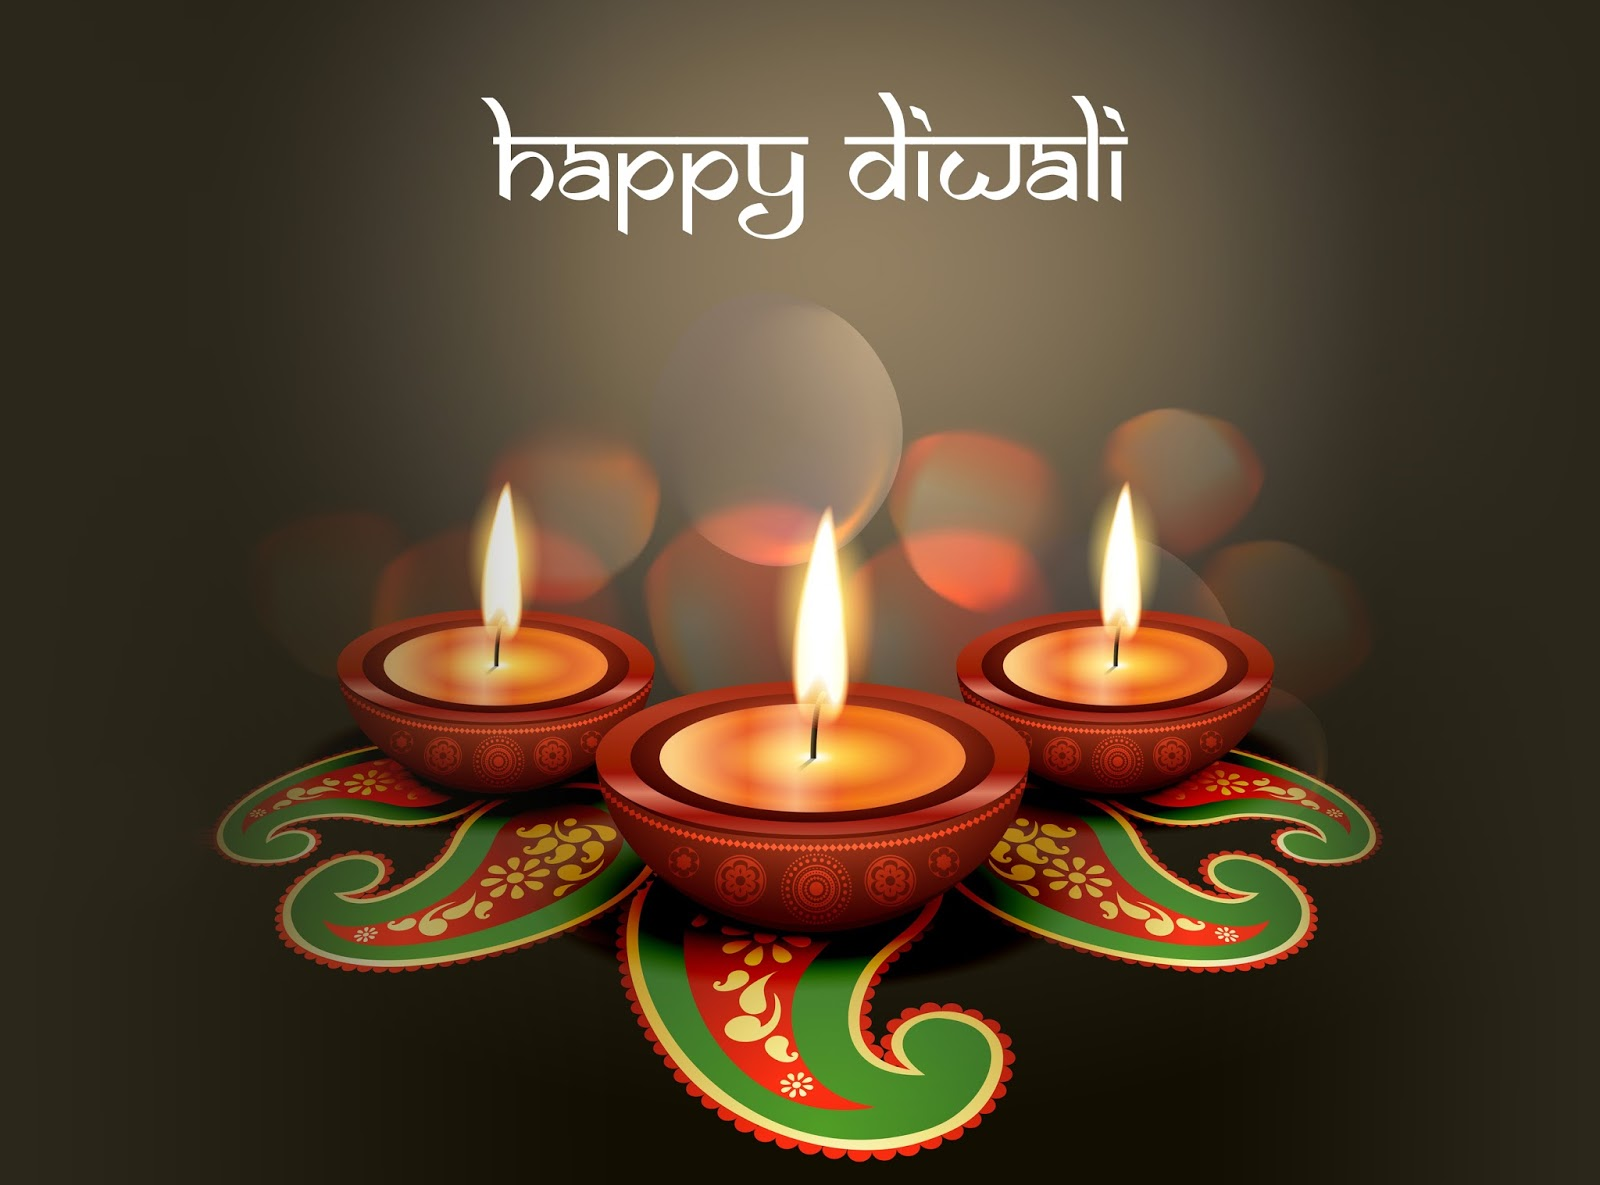 happy diwali 2016 images wishes quotes messages pictures happy diwali 2016 wishes status sms deepavali messages